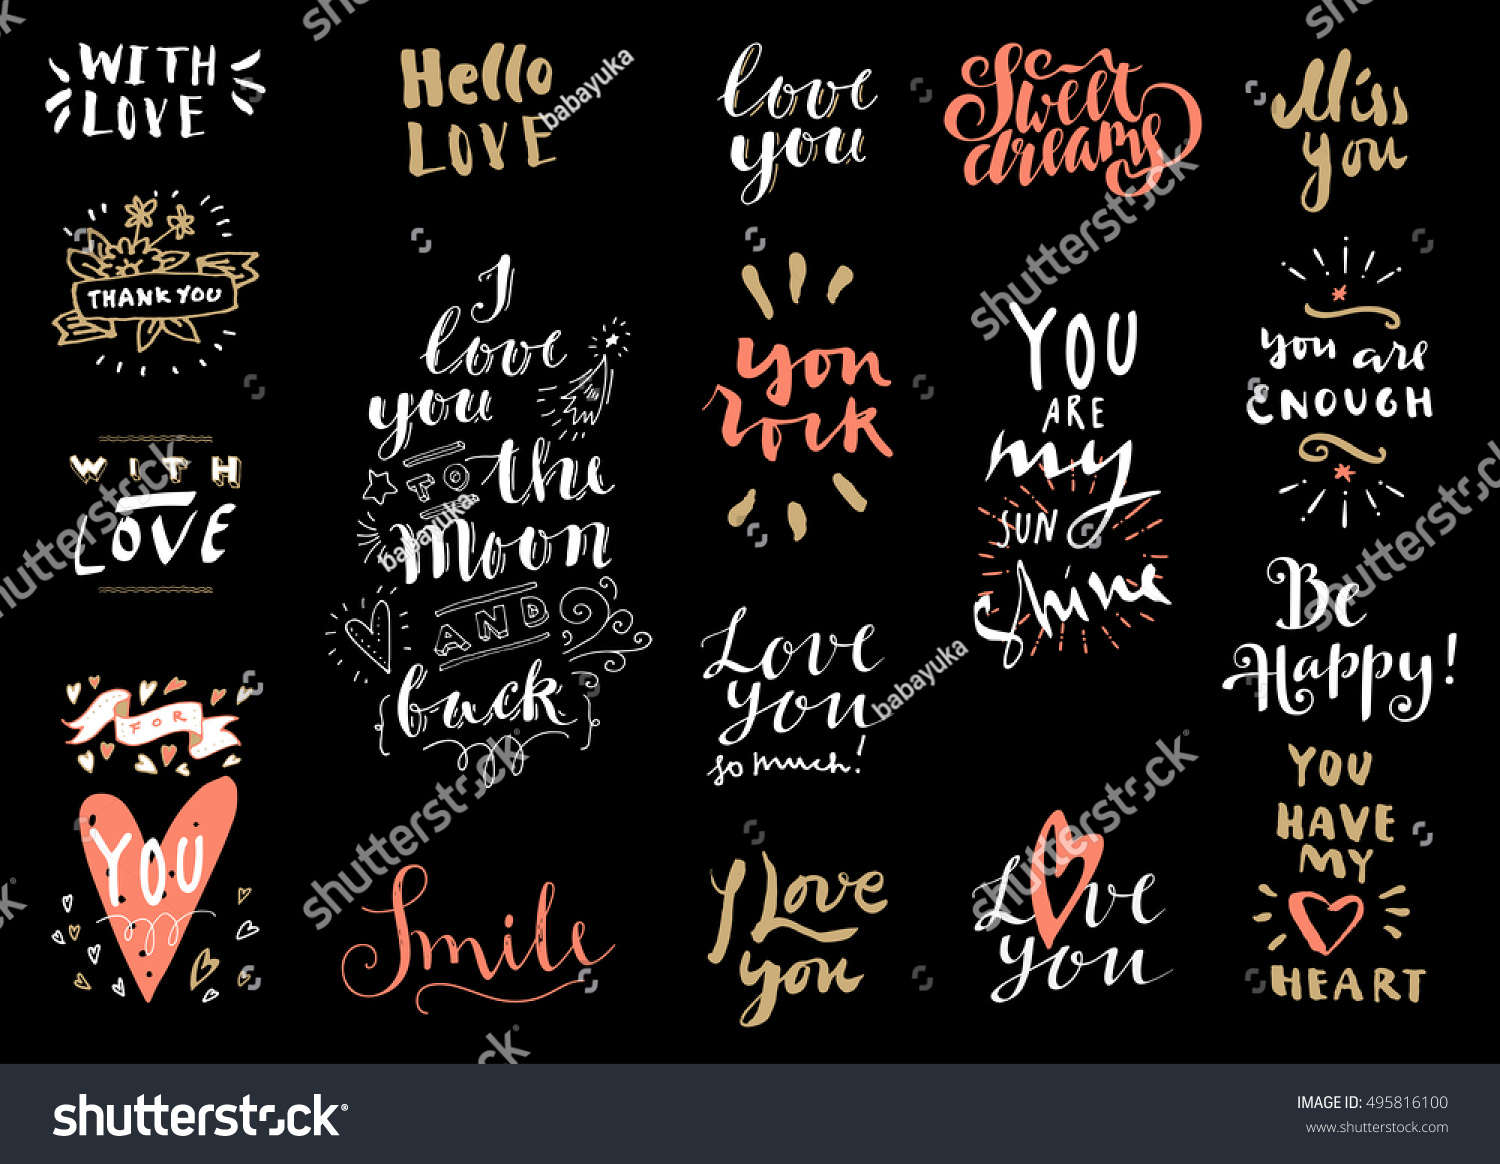 Vector set of Love hand drawn quotes Love messages Hello Love With Love